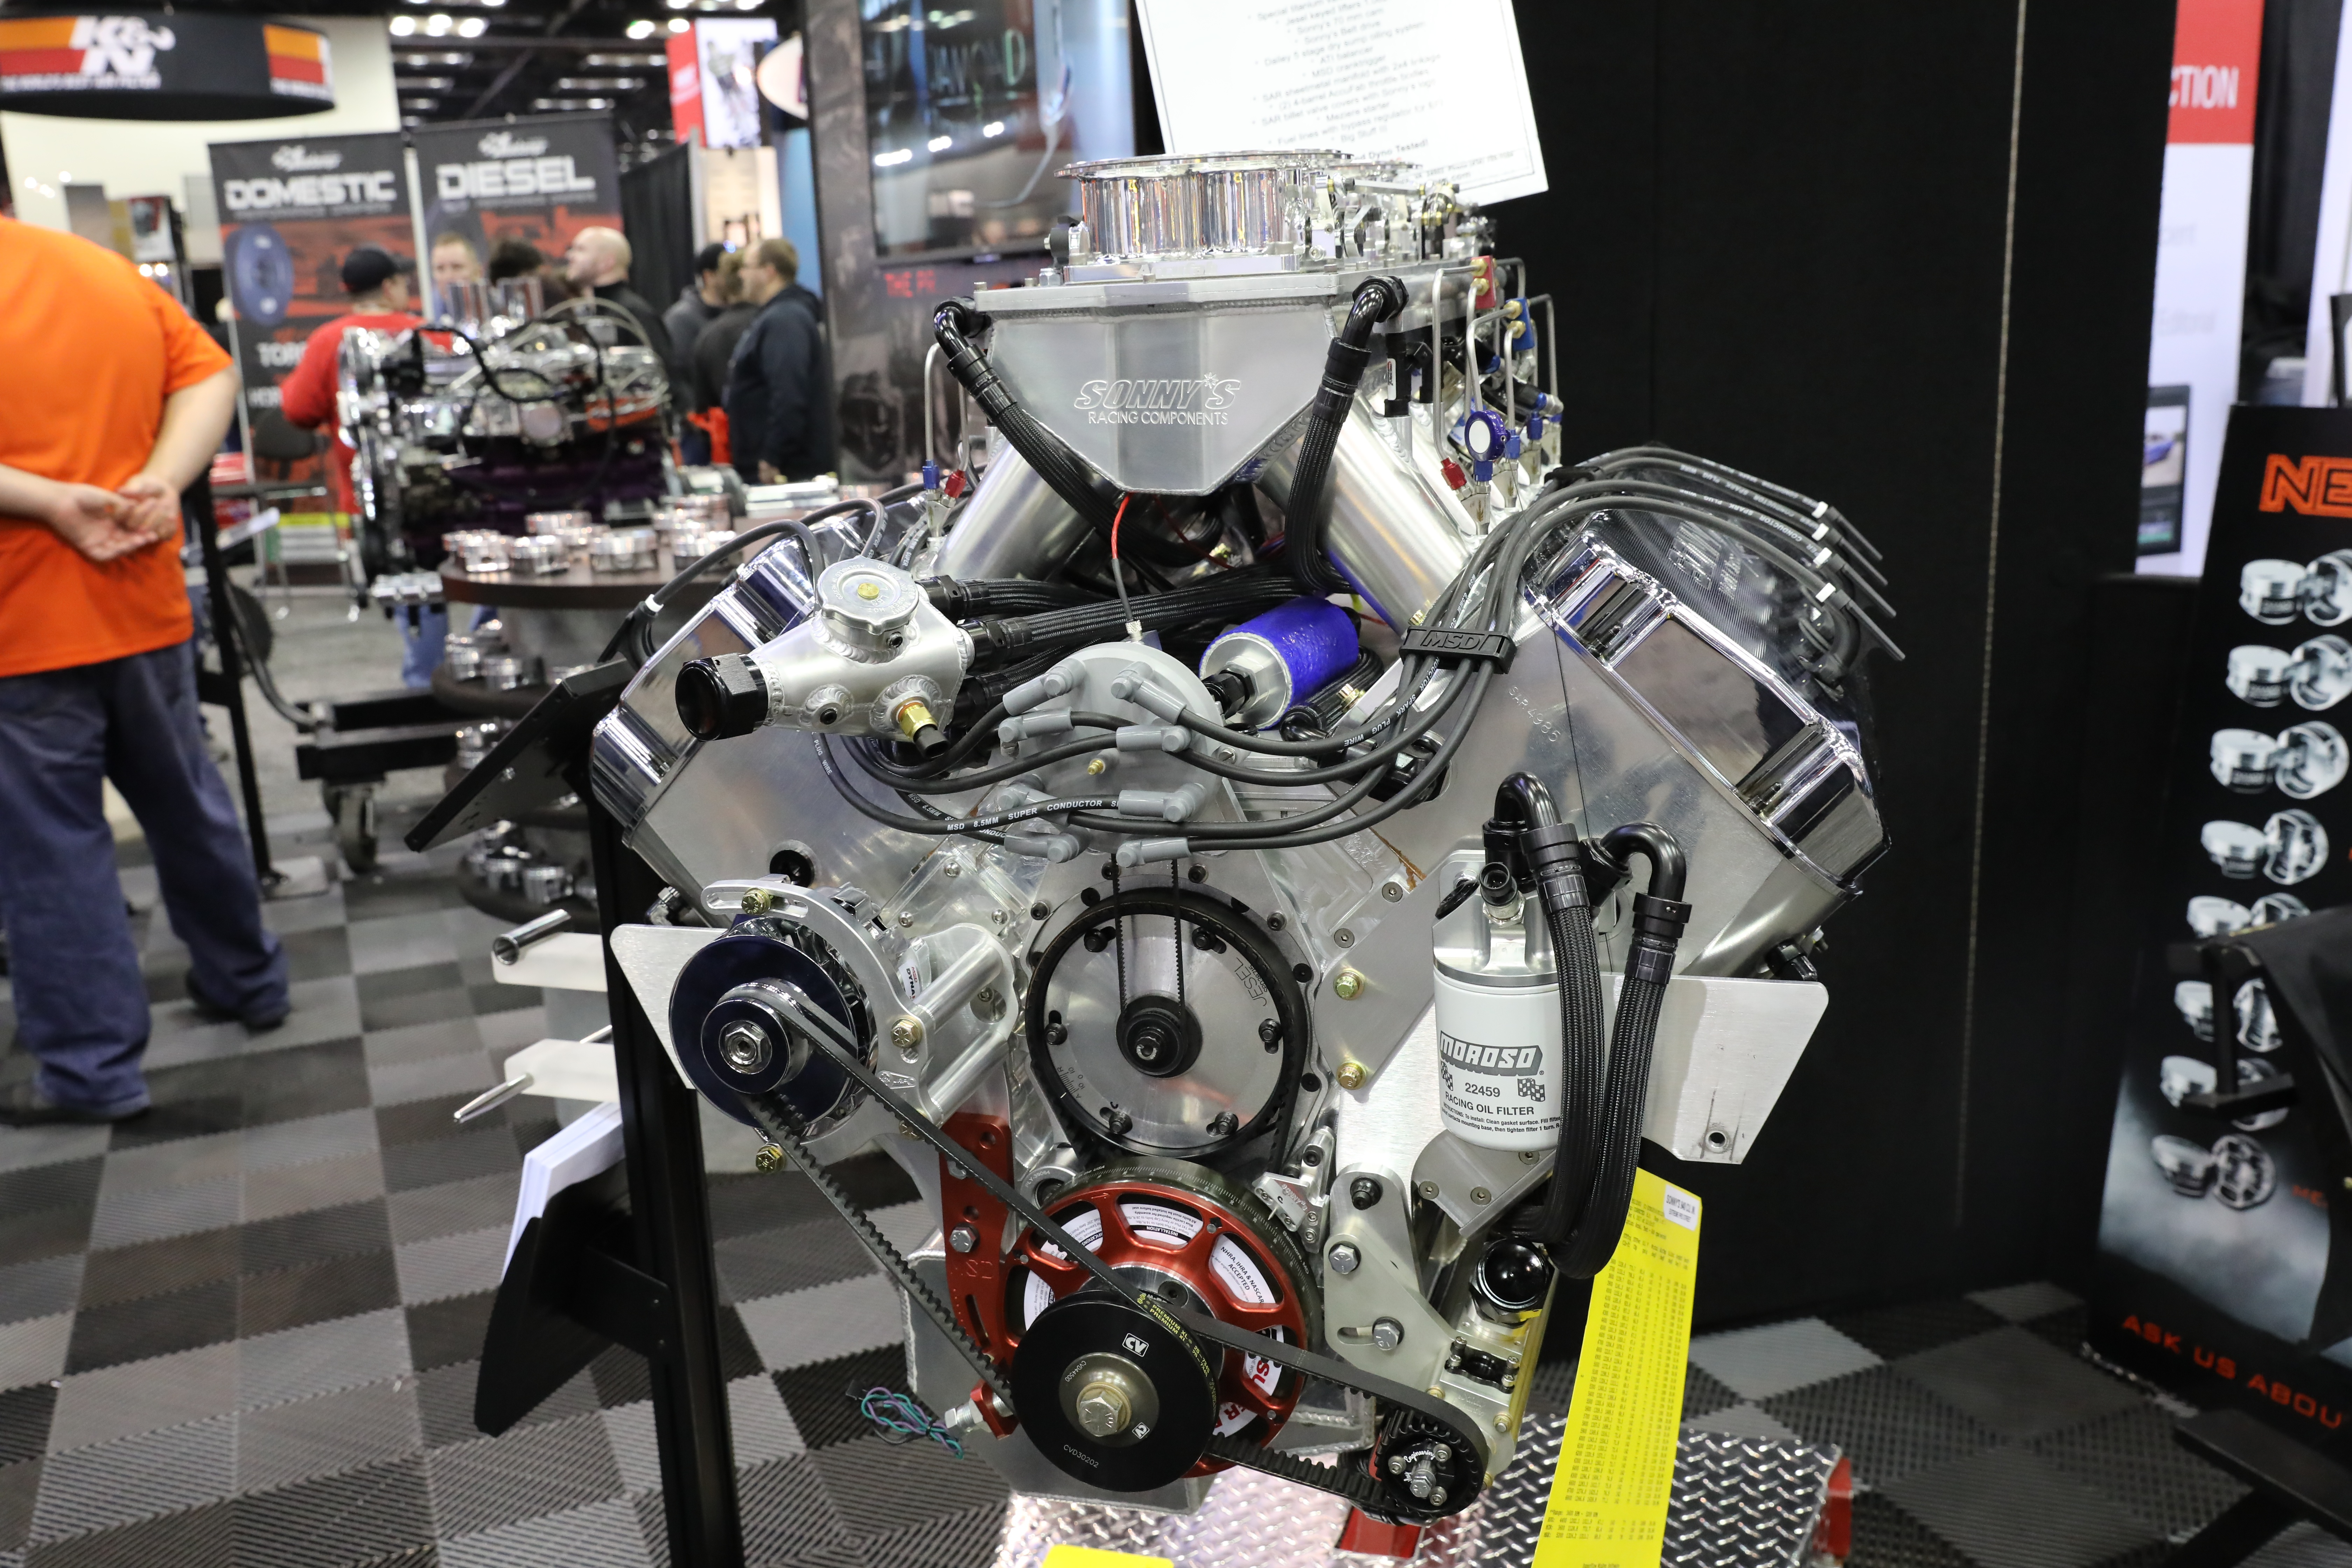 002-Diamond-engines-booth-PRI.jpg